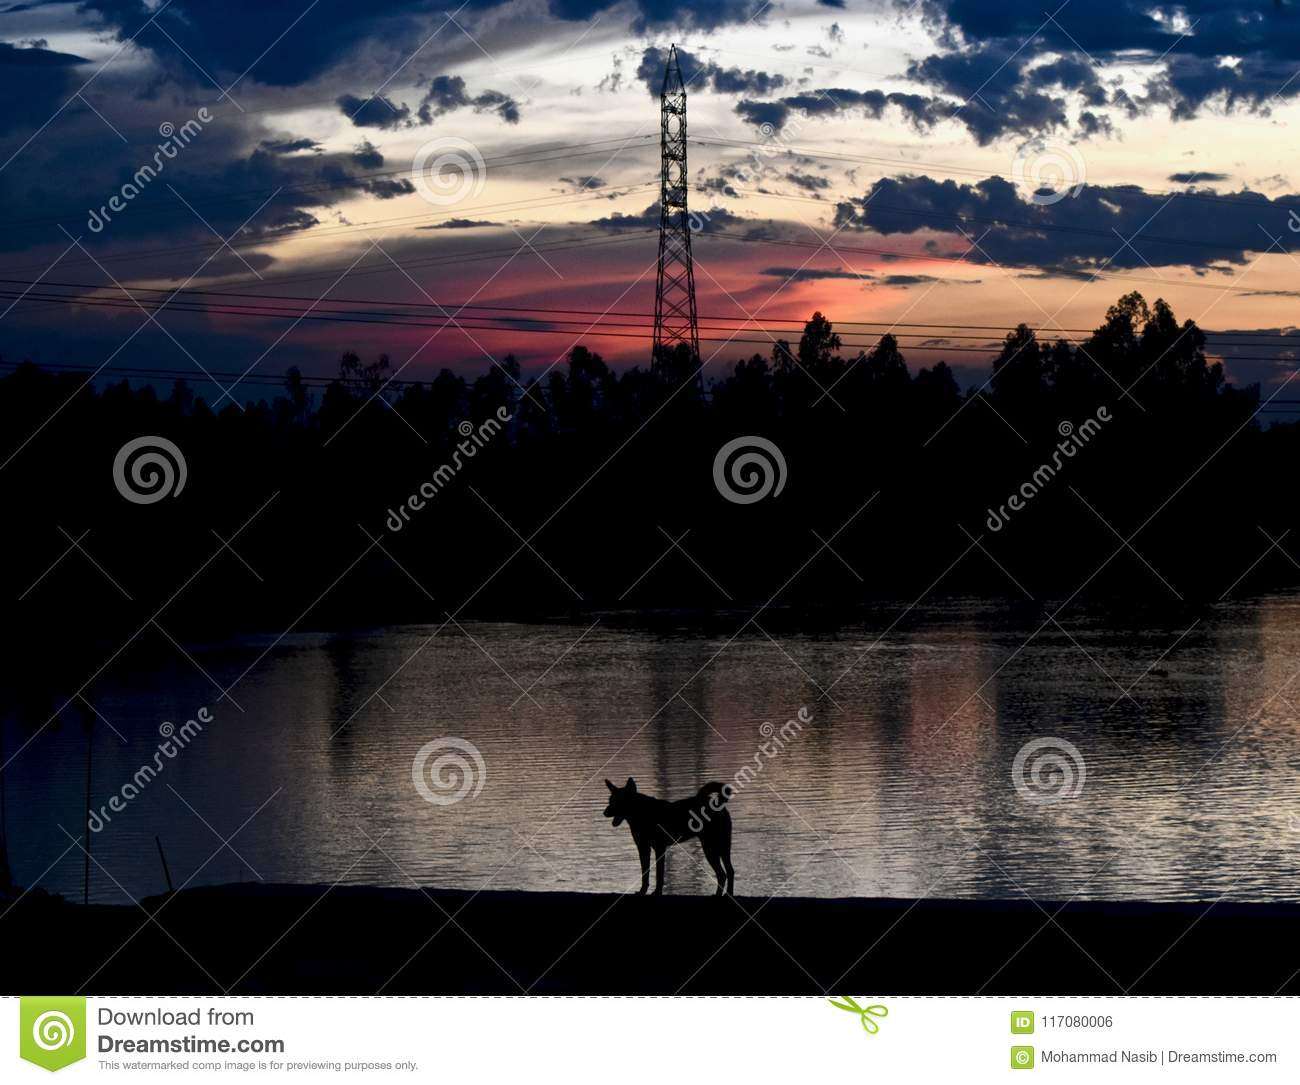 Download A Dog Is Standing Around A River Bank Area In The Afternoon Stock Photo - Image of beautiful, reflection: 117080006